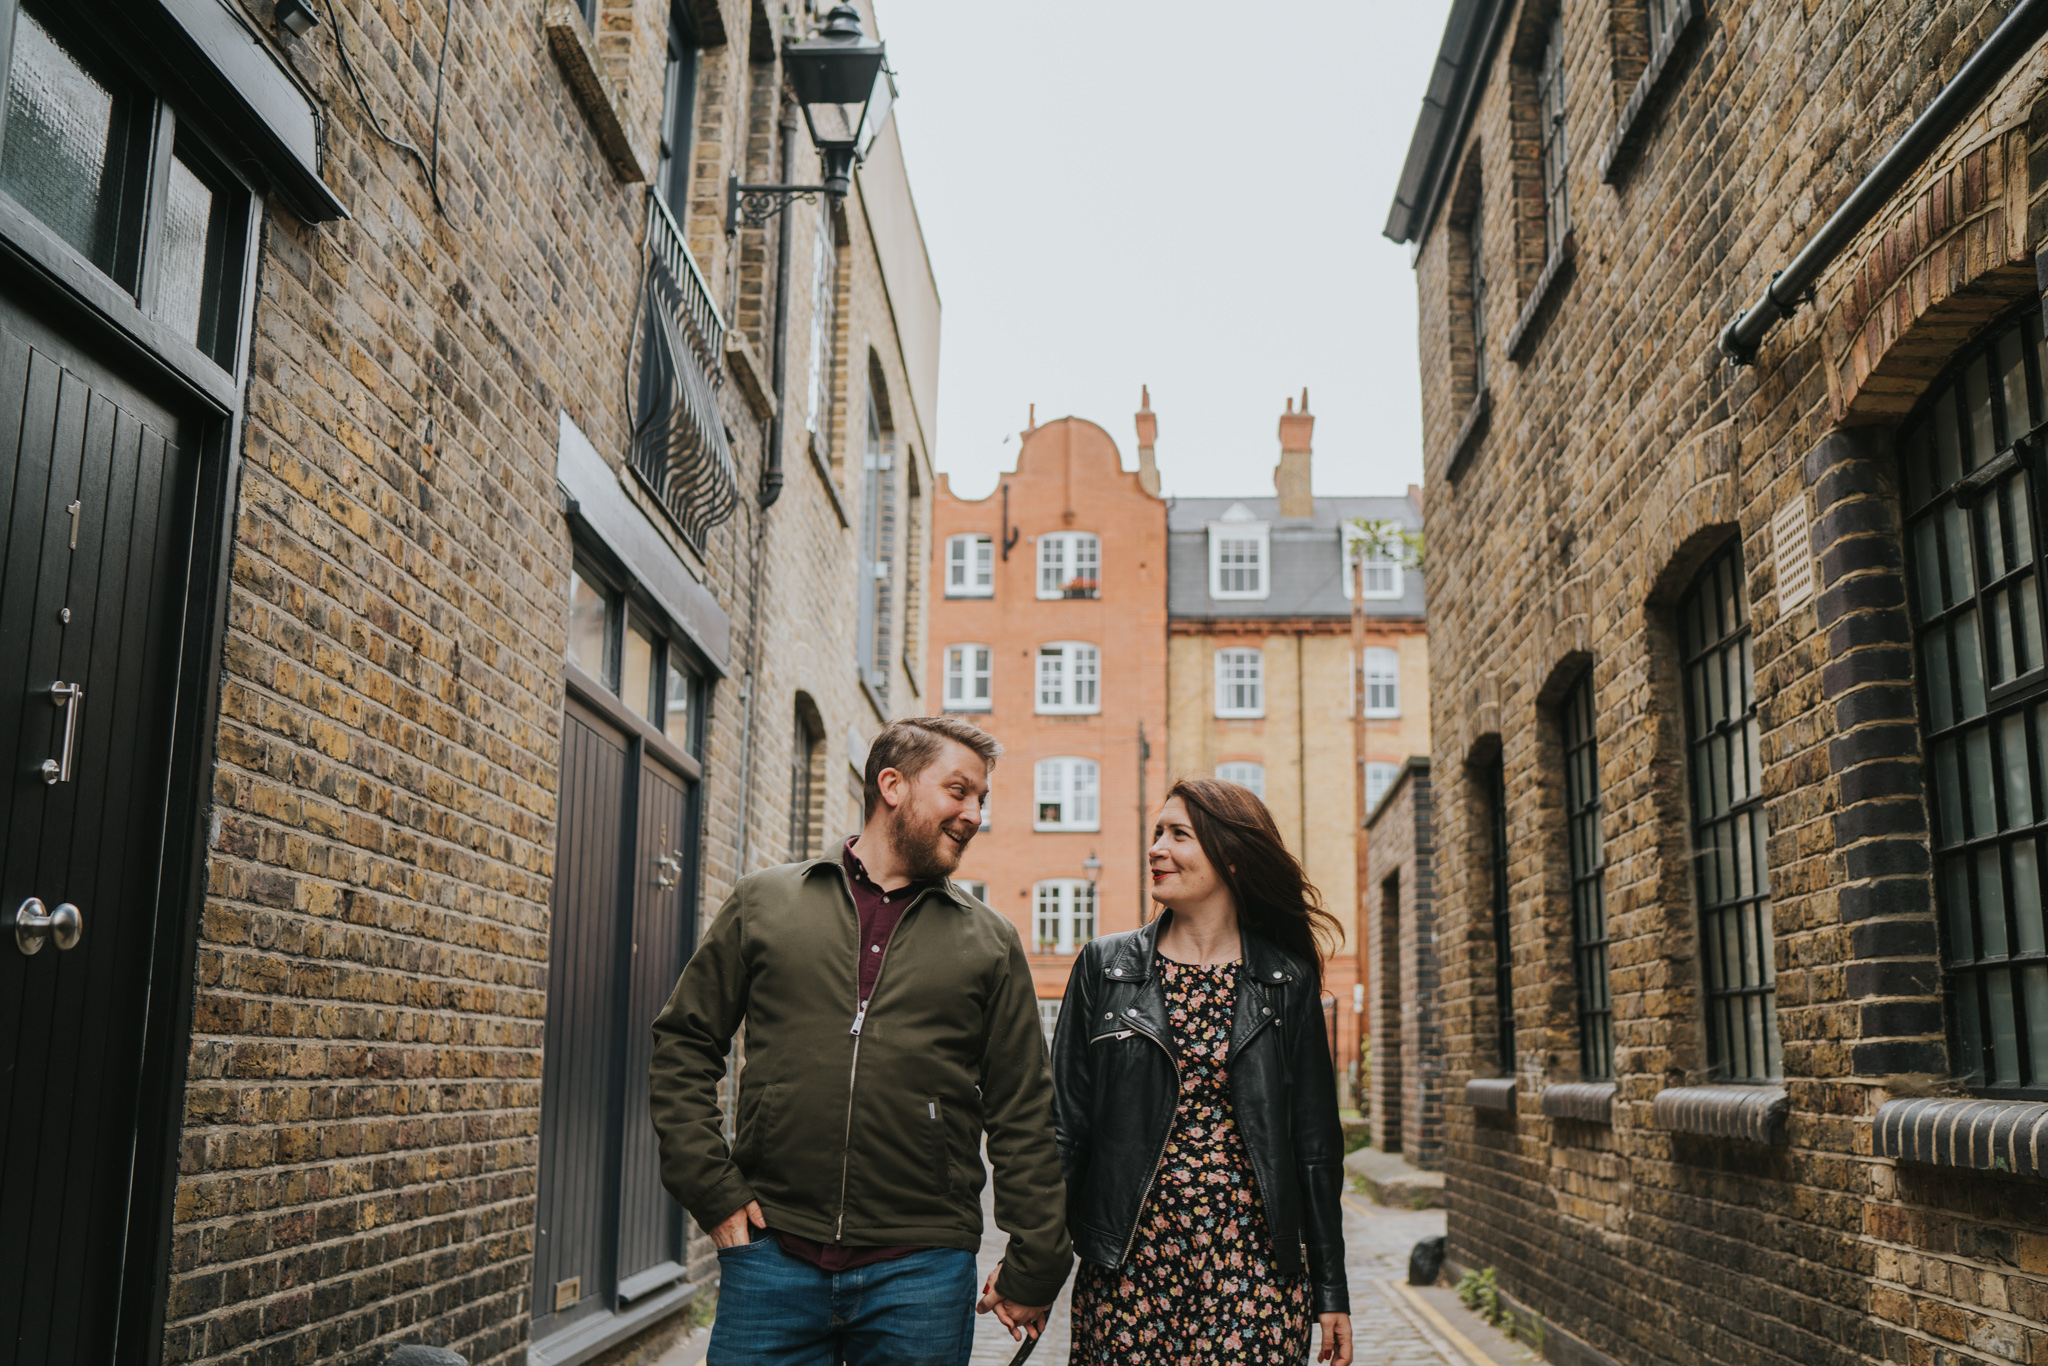 natalie-john-urban-london-engagement-grace-elizabeth-colchester-essex-alternative-wedding-photographer-essex-suffolk-norfolk-devon (52 of 66).jpg